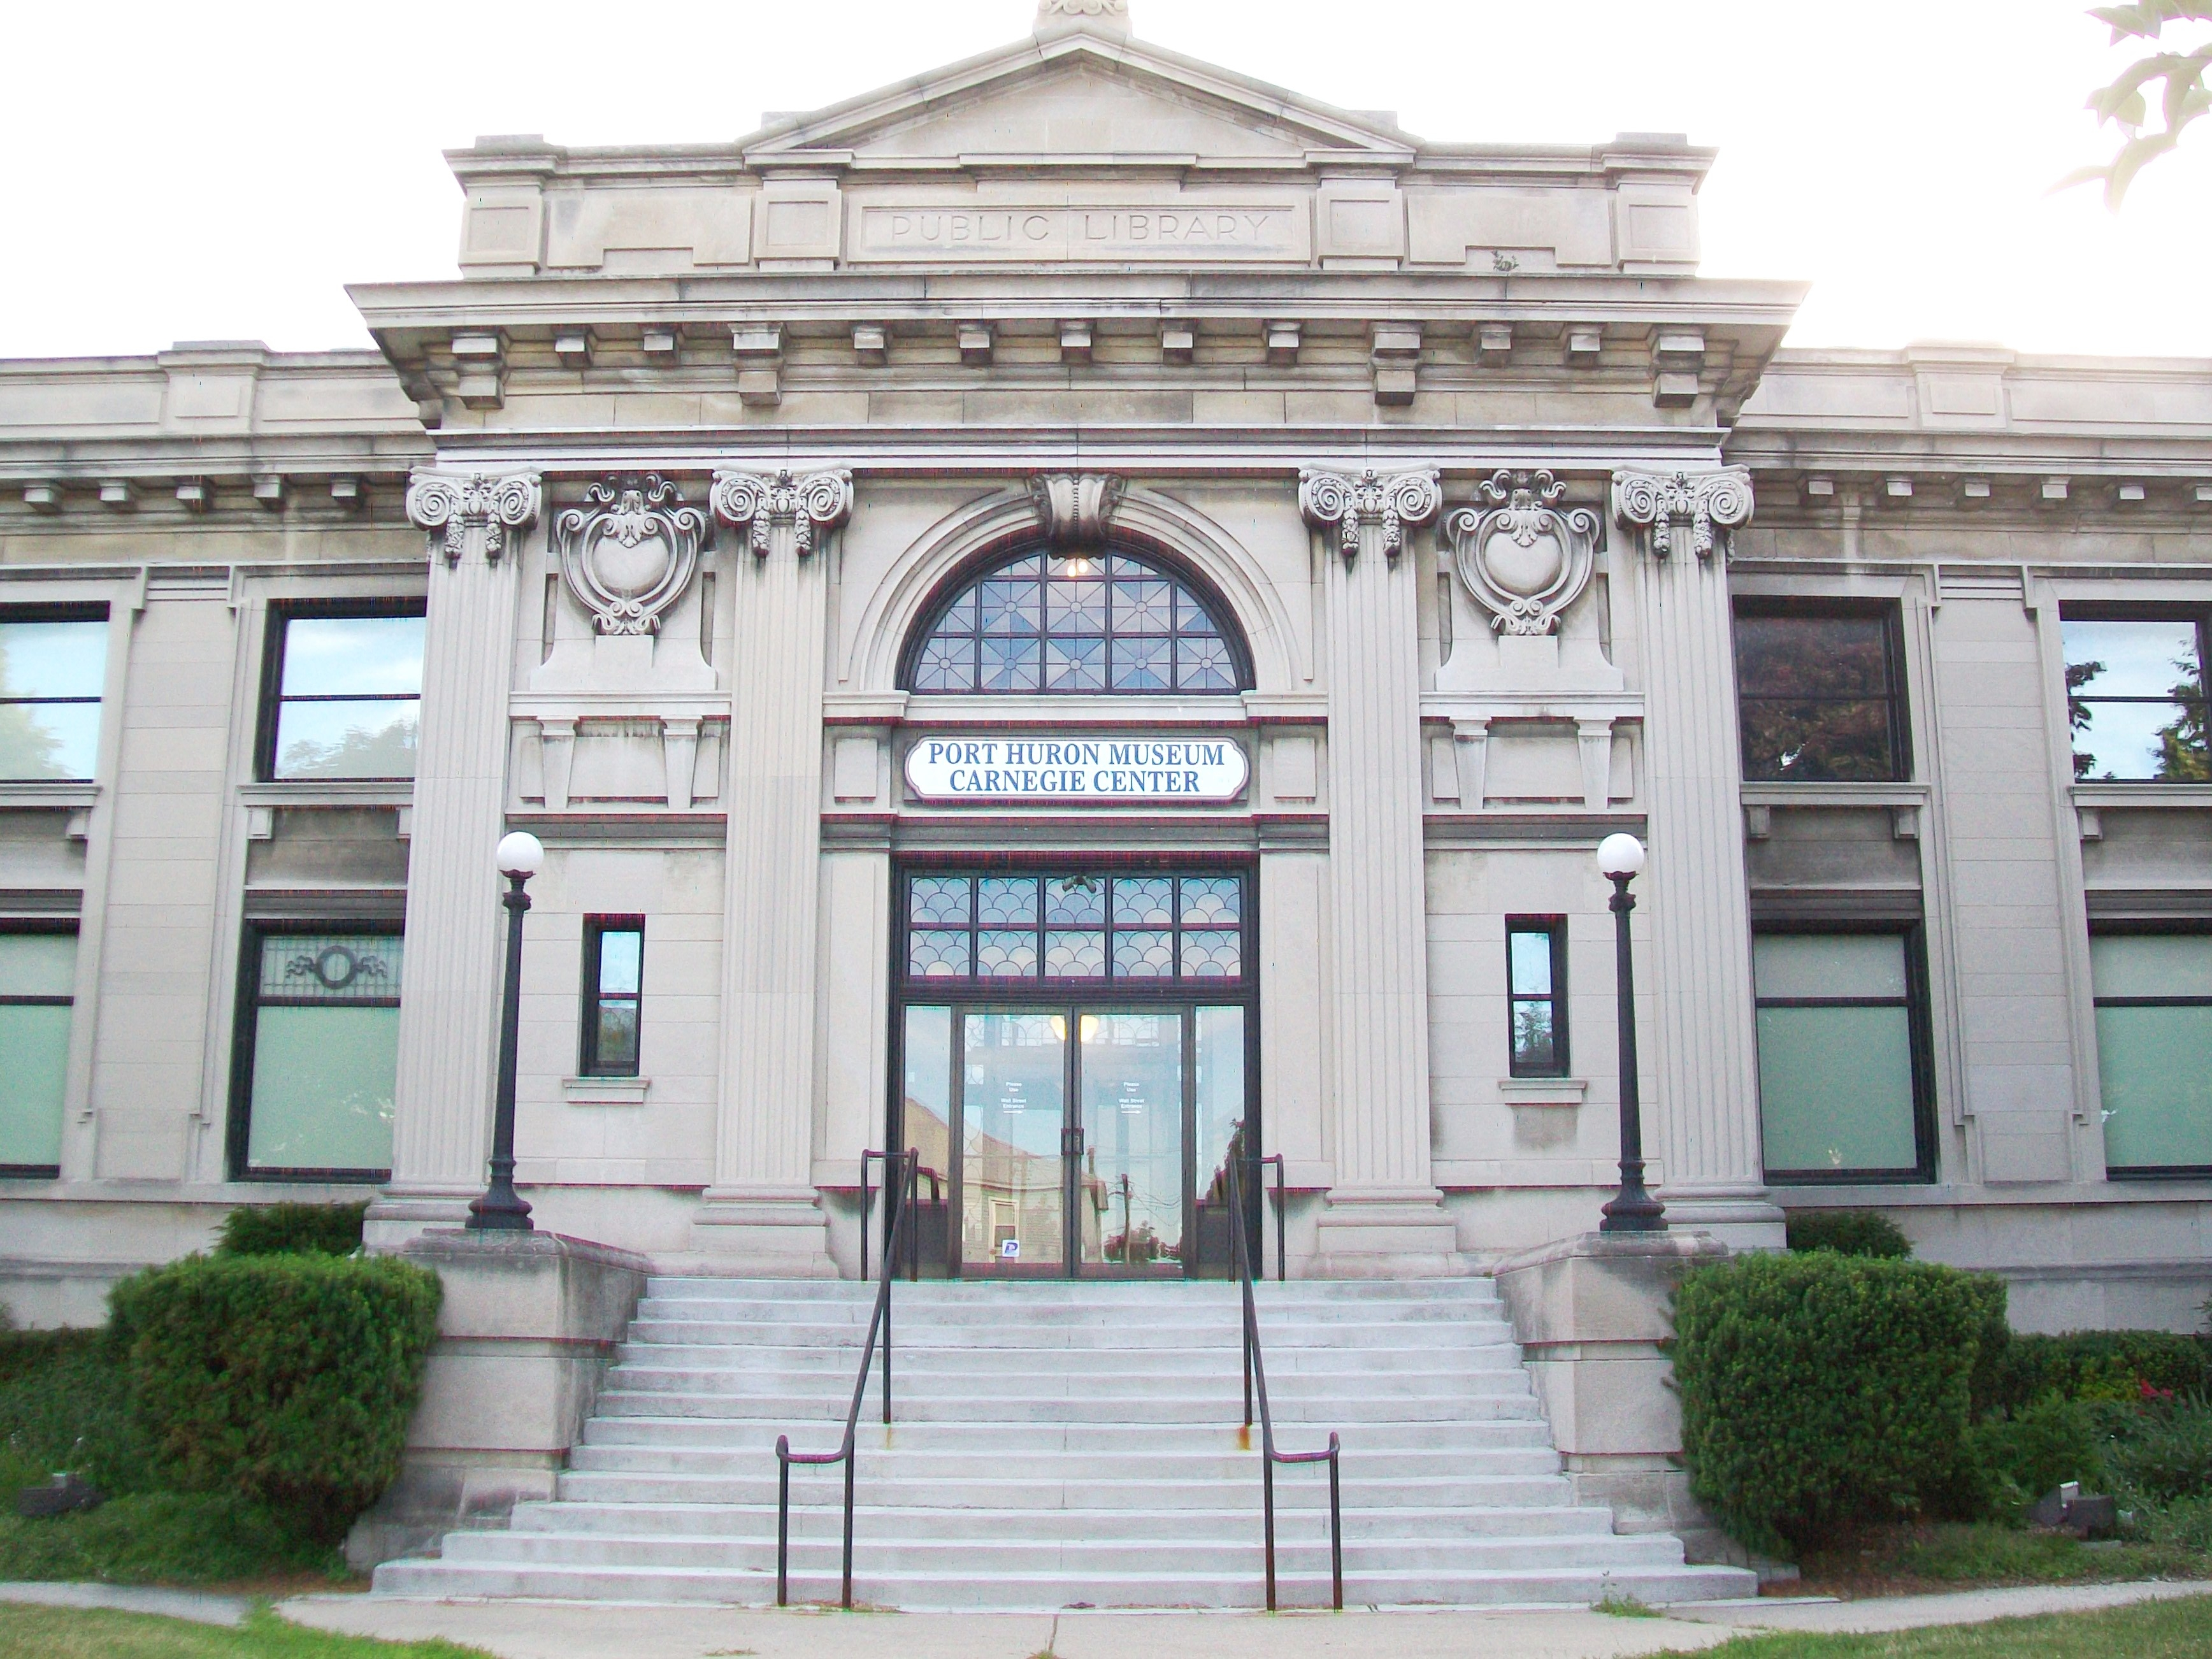 Port Huron Public Library